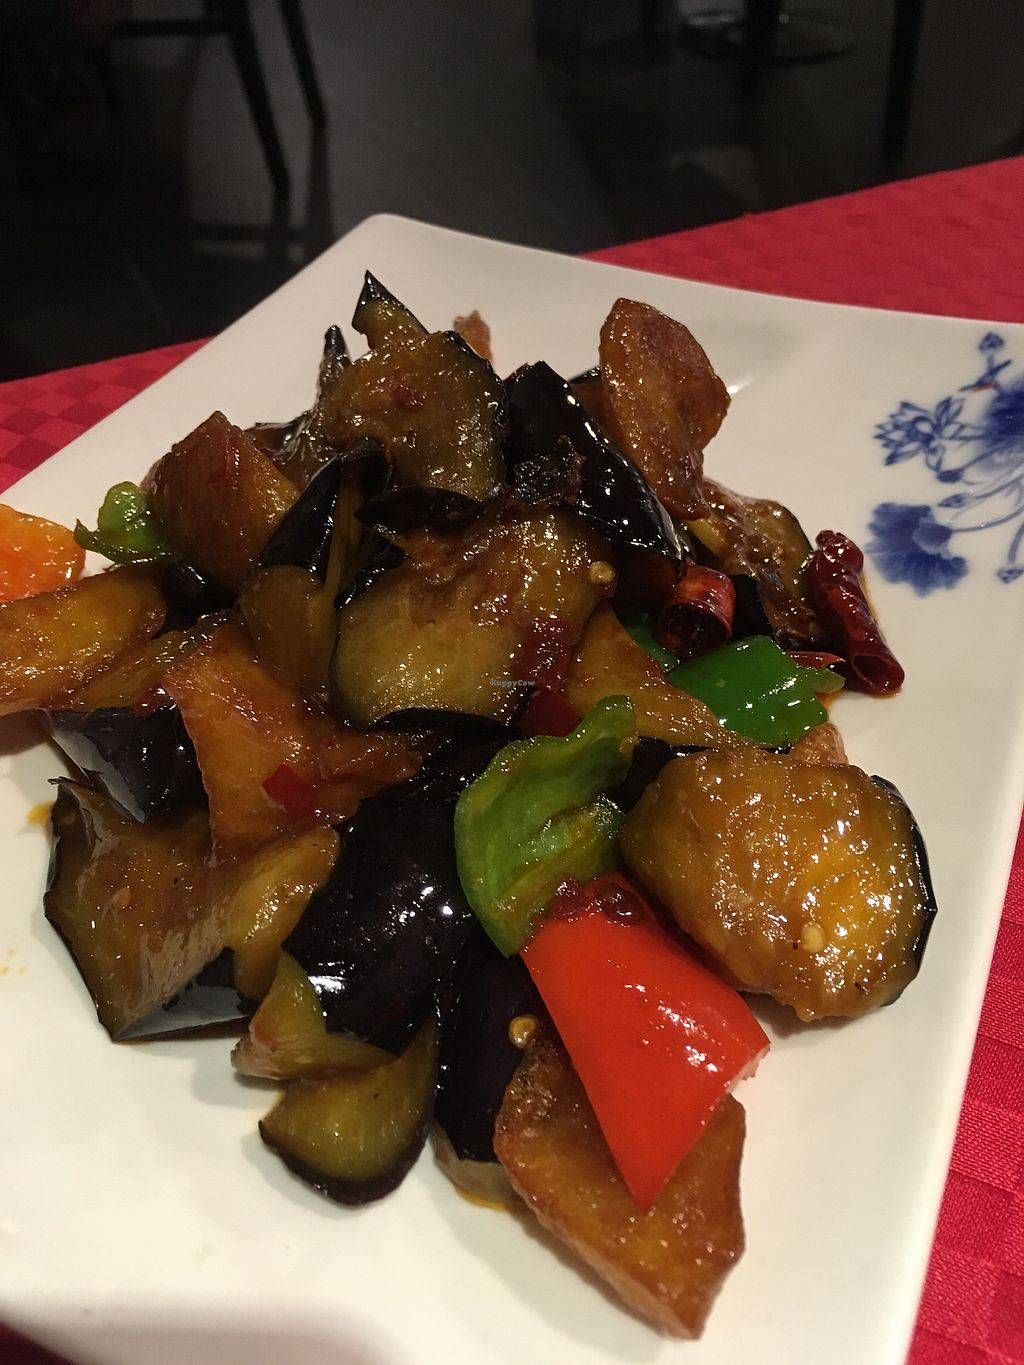 """Photo of Wu Shang Vegetarian  by <a href=""""/members/profile/SuBravo"""">SuBravo</a> <br/>aubergine/ eggplant  <br/> July 26, 2017  - <a href='/contact/abuse/image/18442/285049'>Report</a>"""